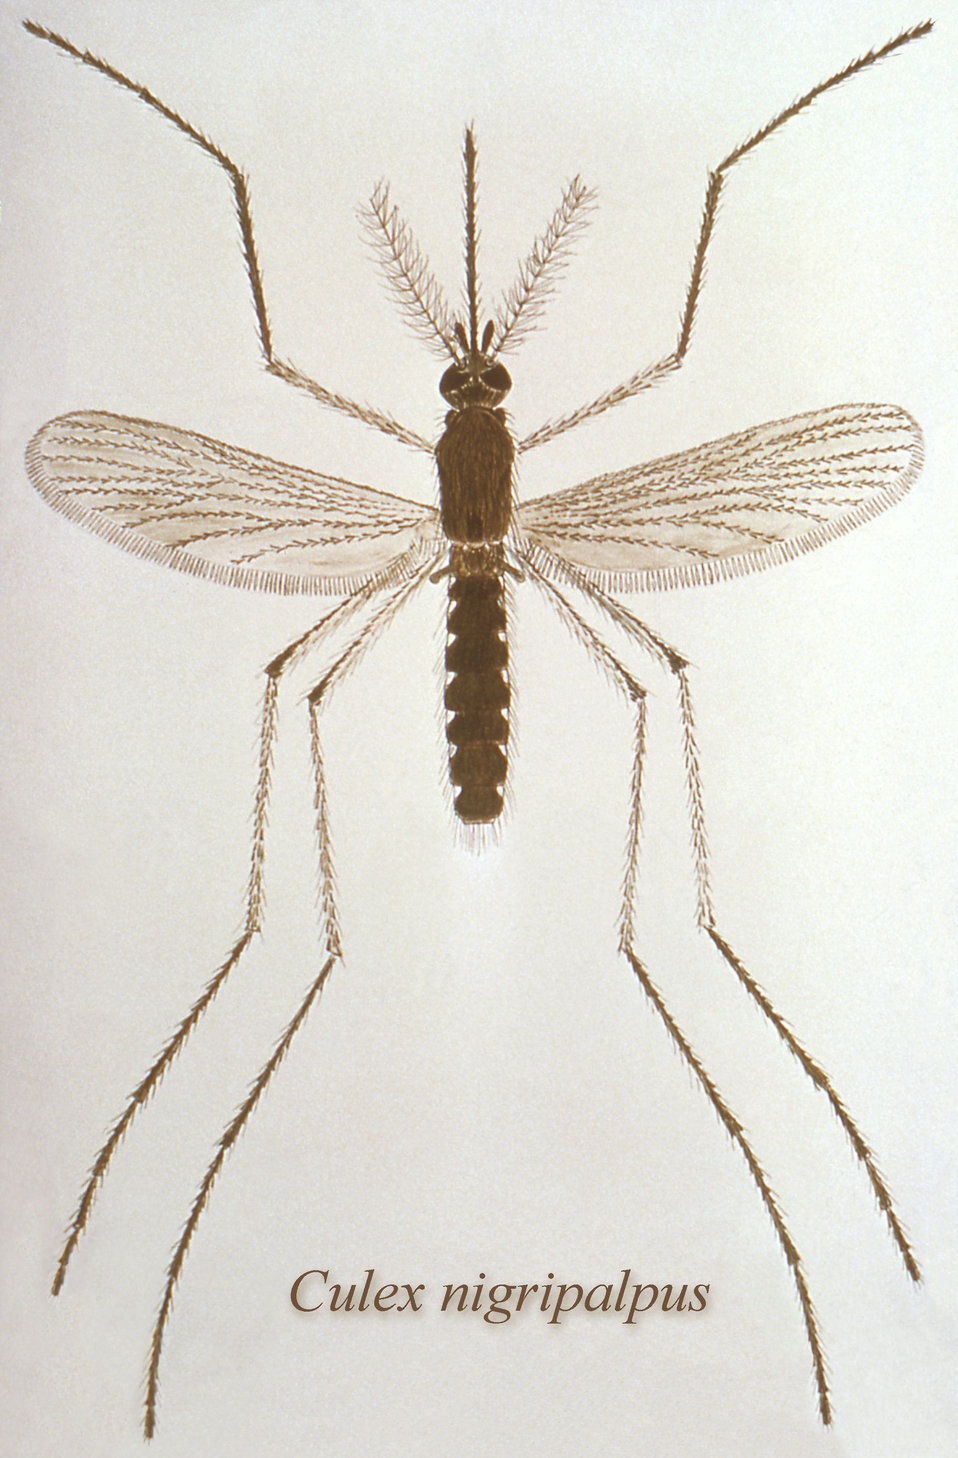 This illustration depicts a dorsal view of a Culex nigripalpus mosquito.